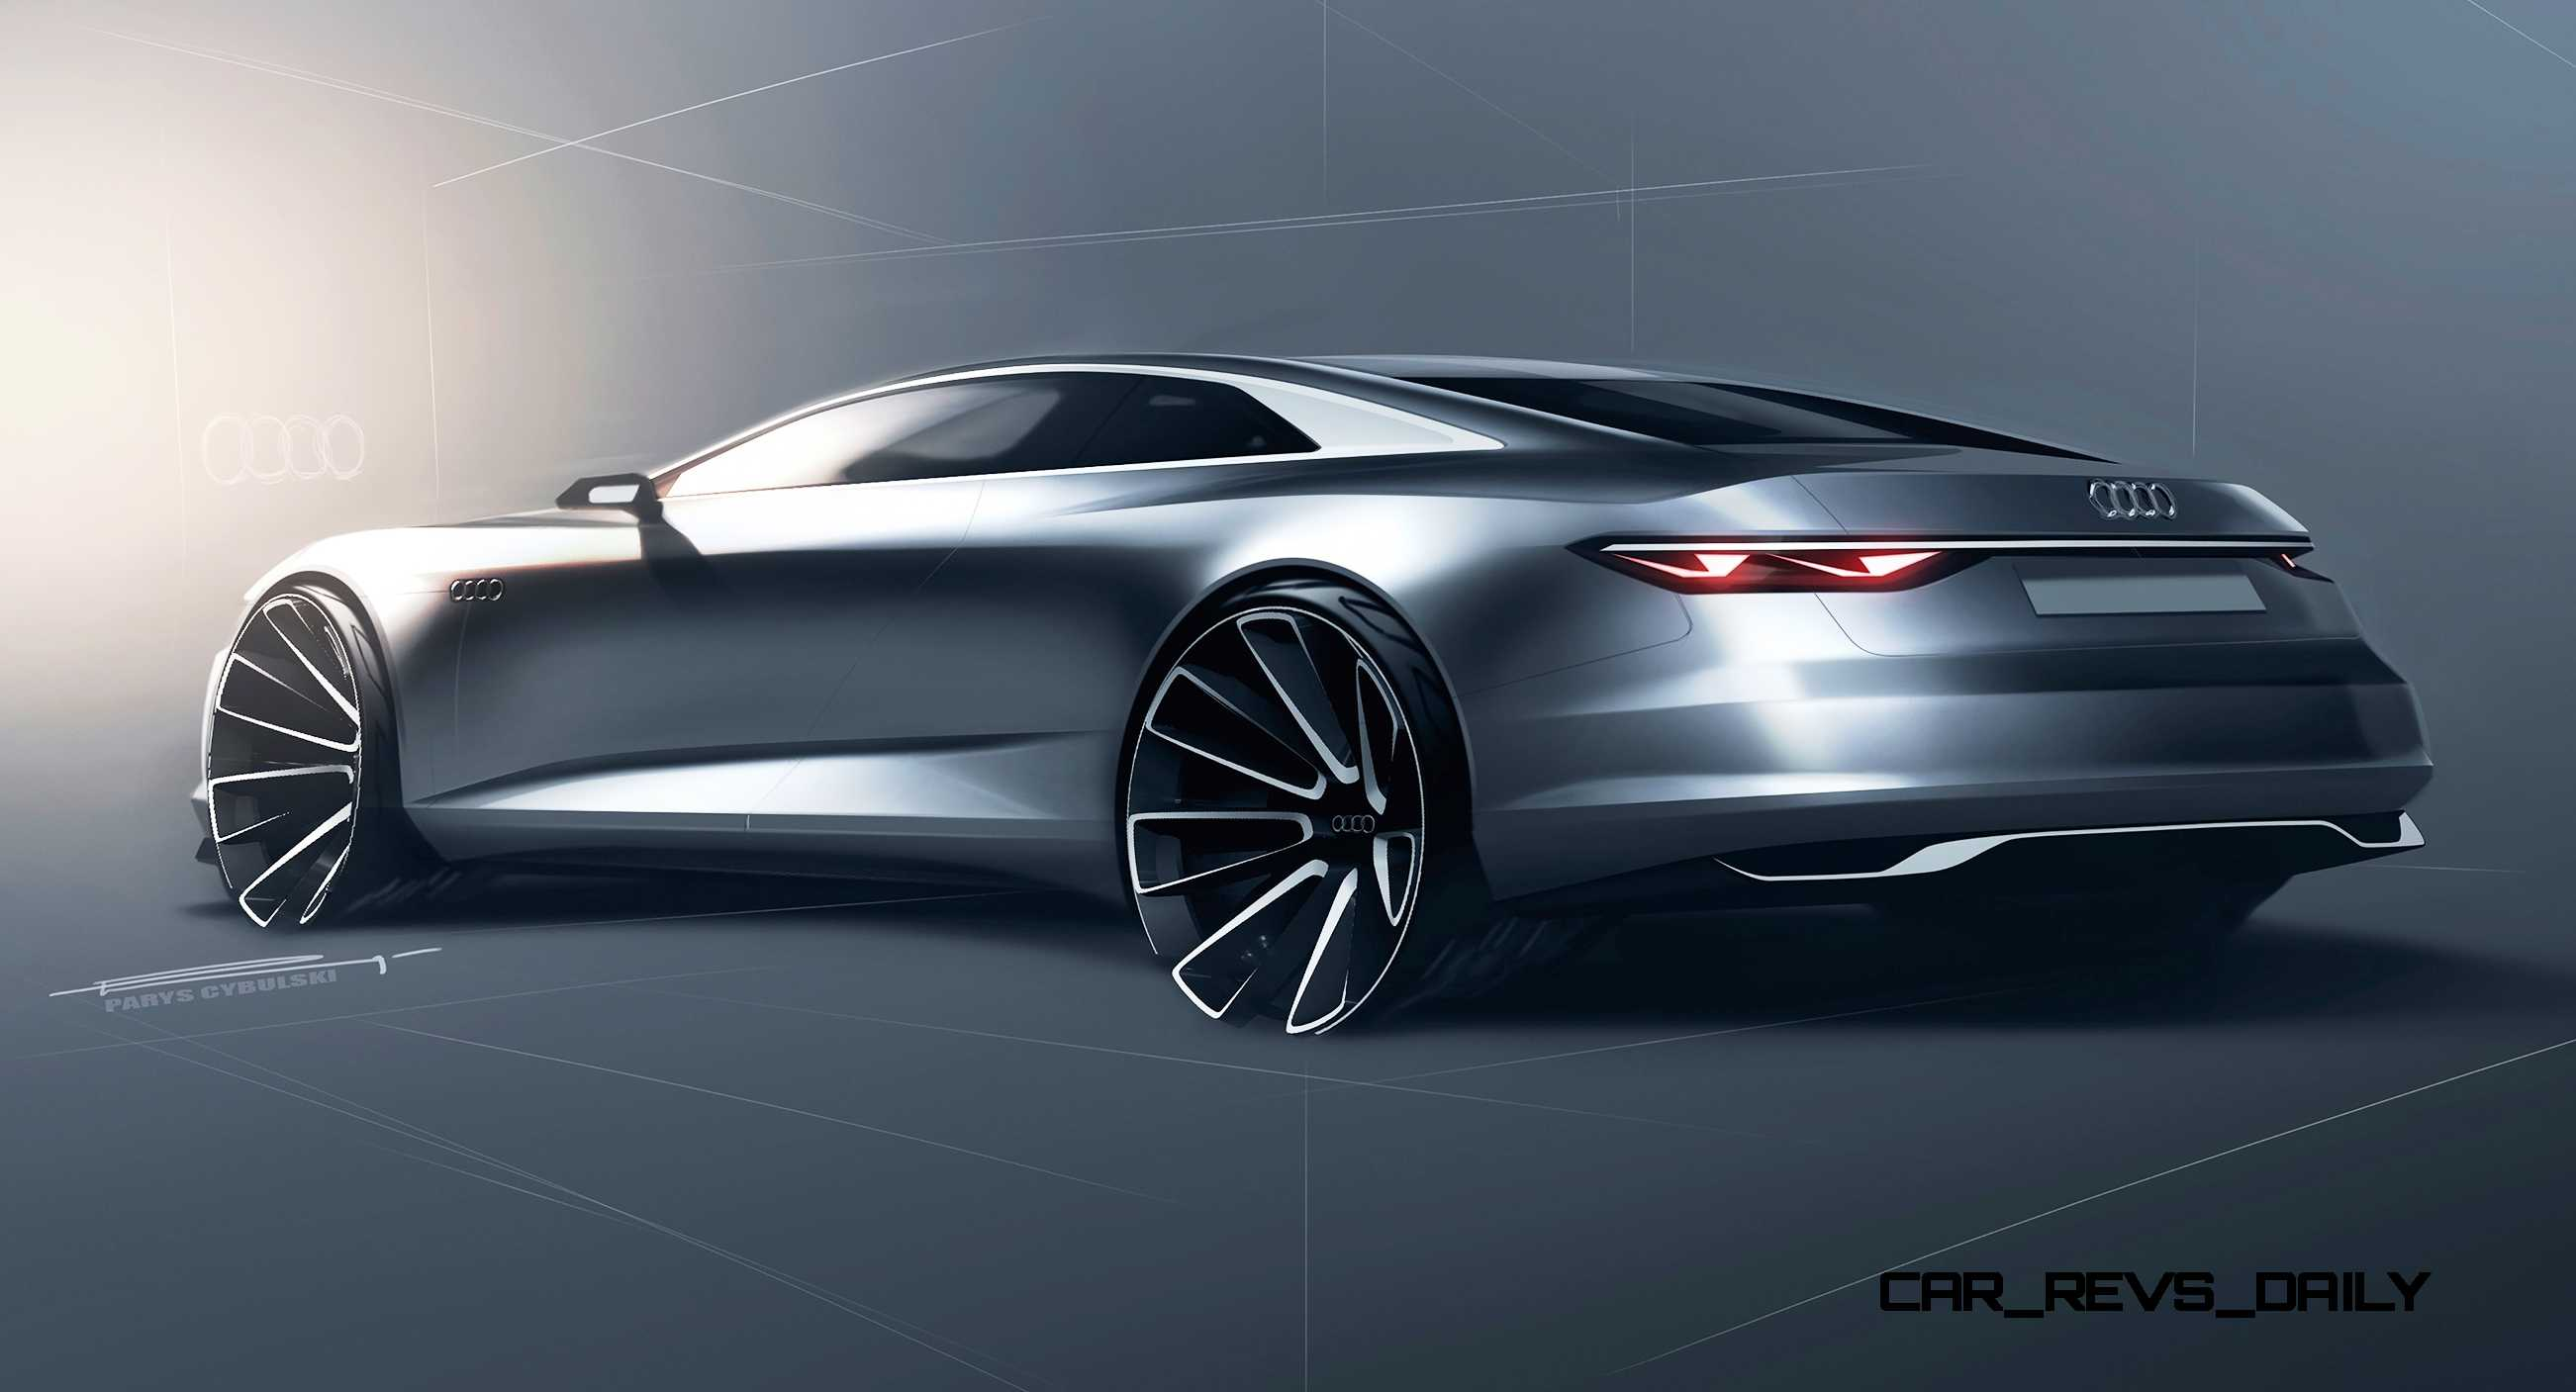 2014 Audi Prologue Concept - World Debut and Design Analysis